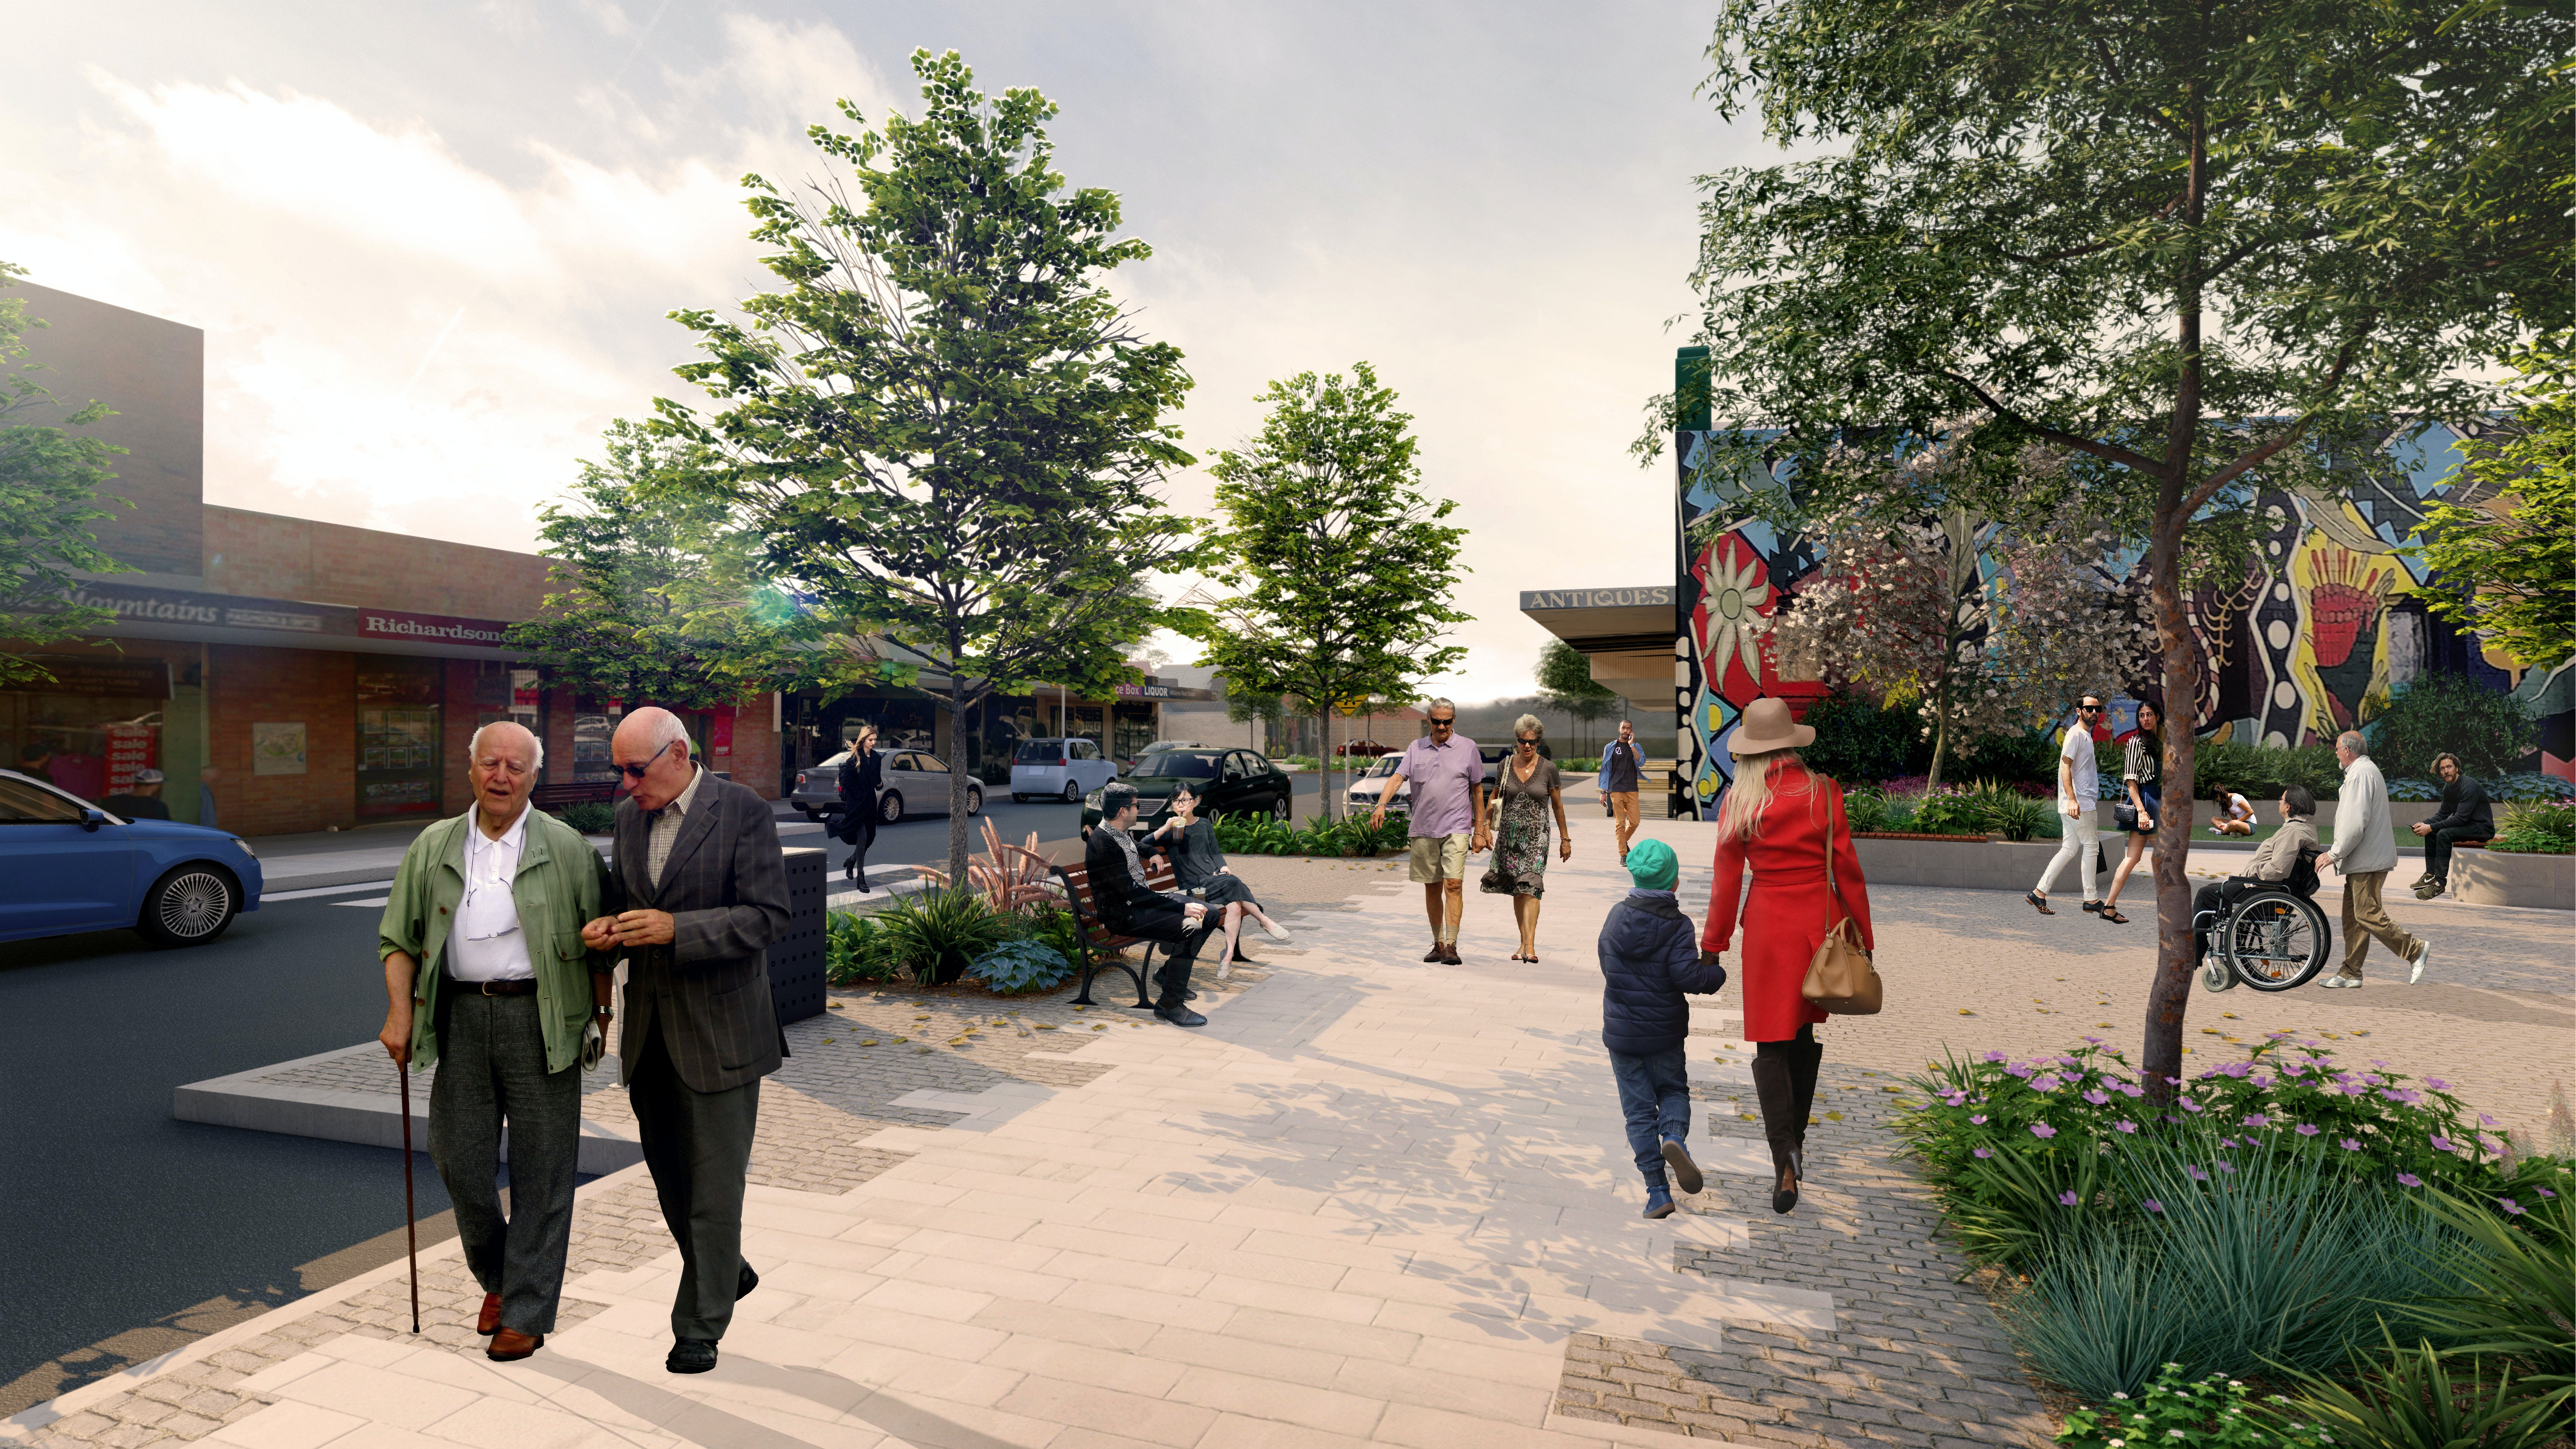 Proposed town square and pedestrian crossing